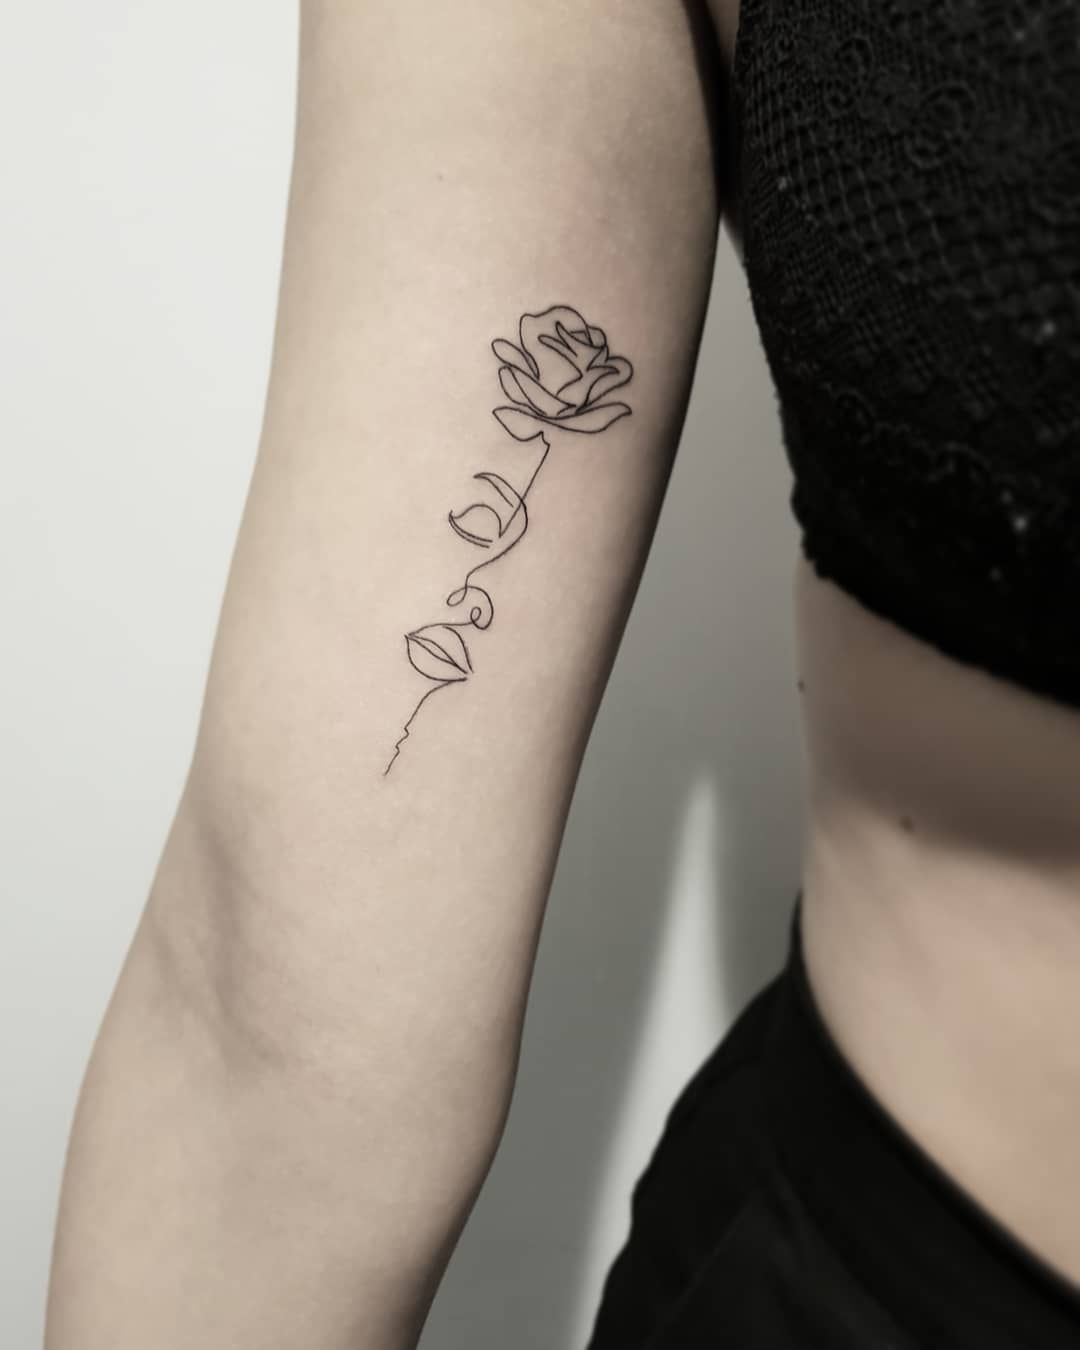 Cute Small Tattoo Designs For Girls Female Women (79)